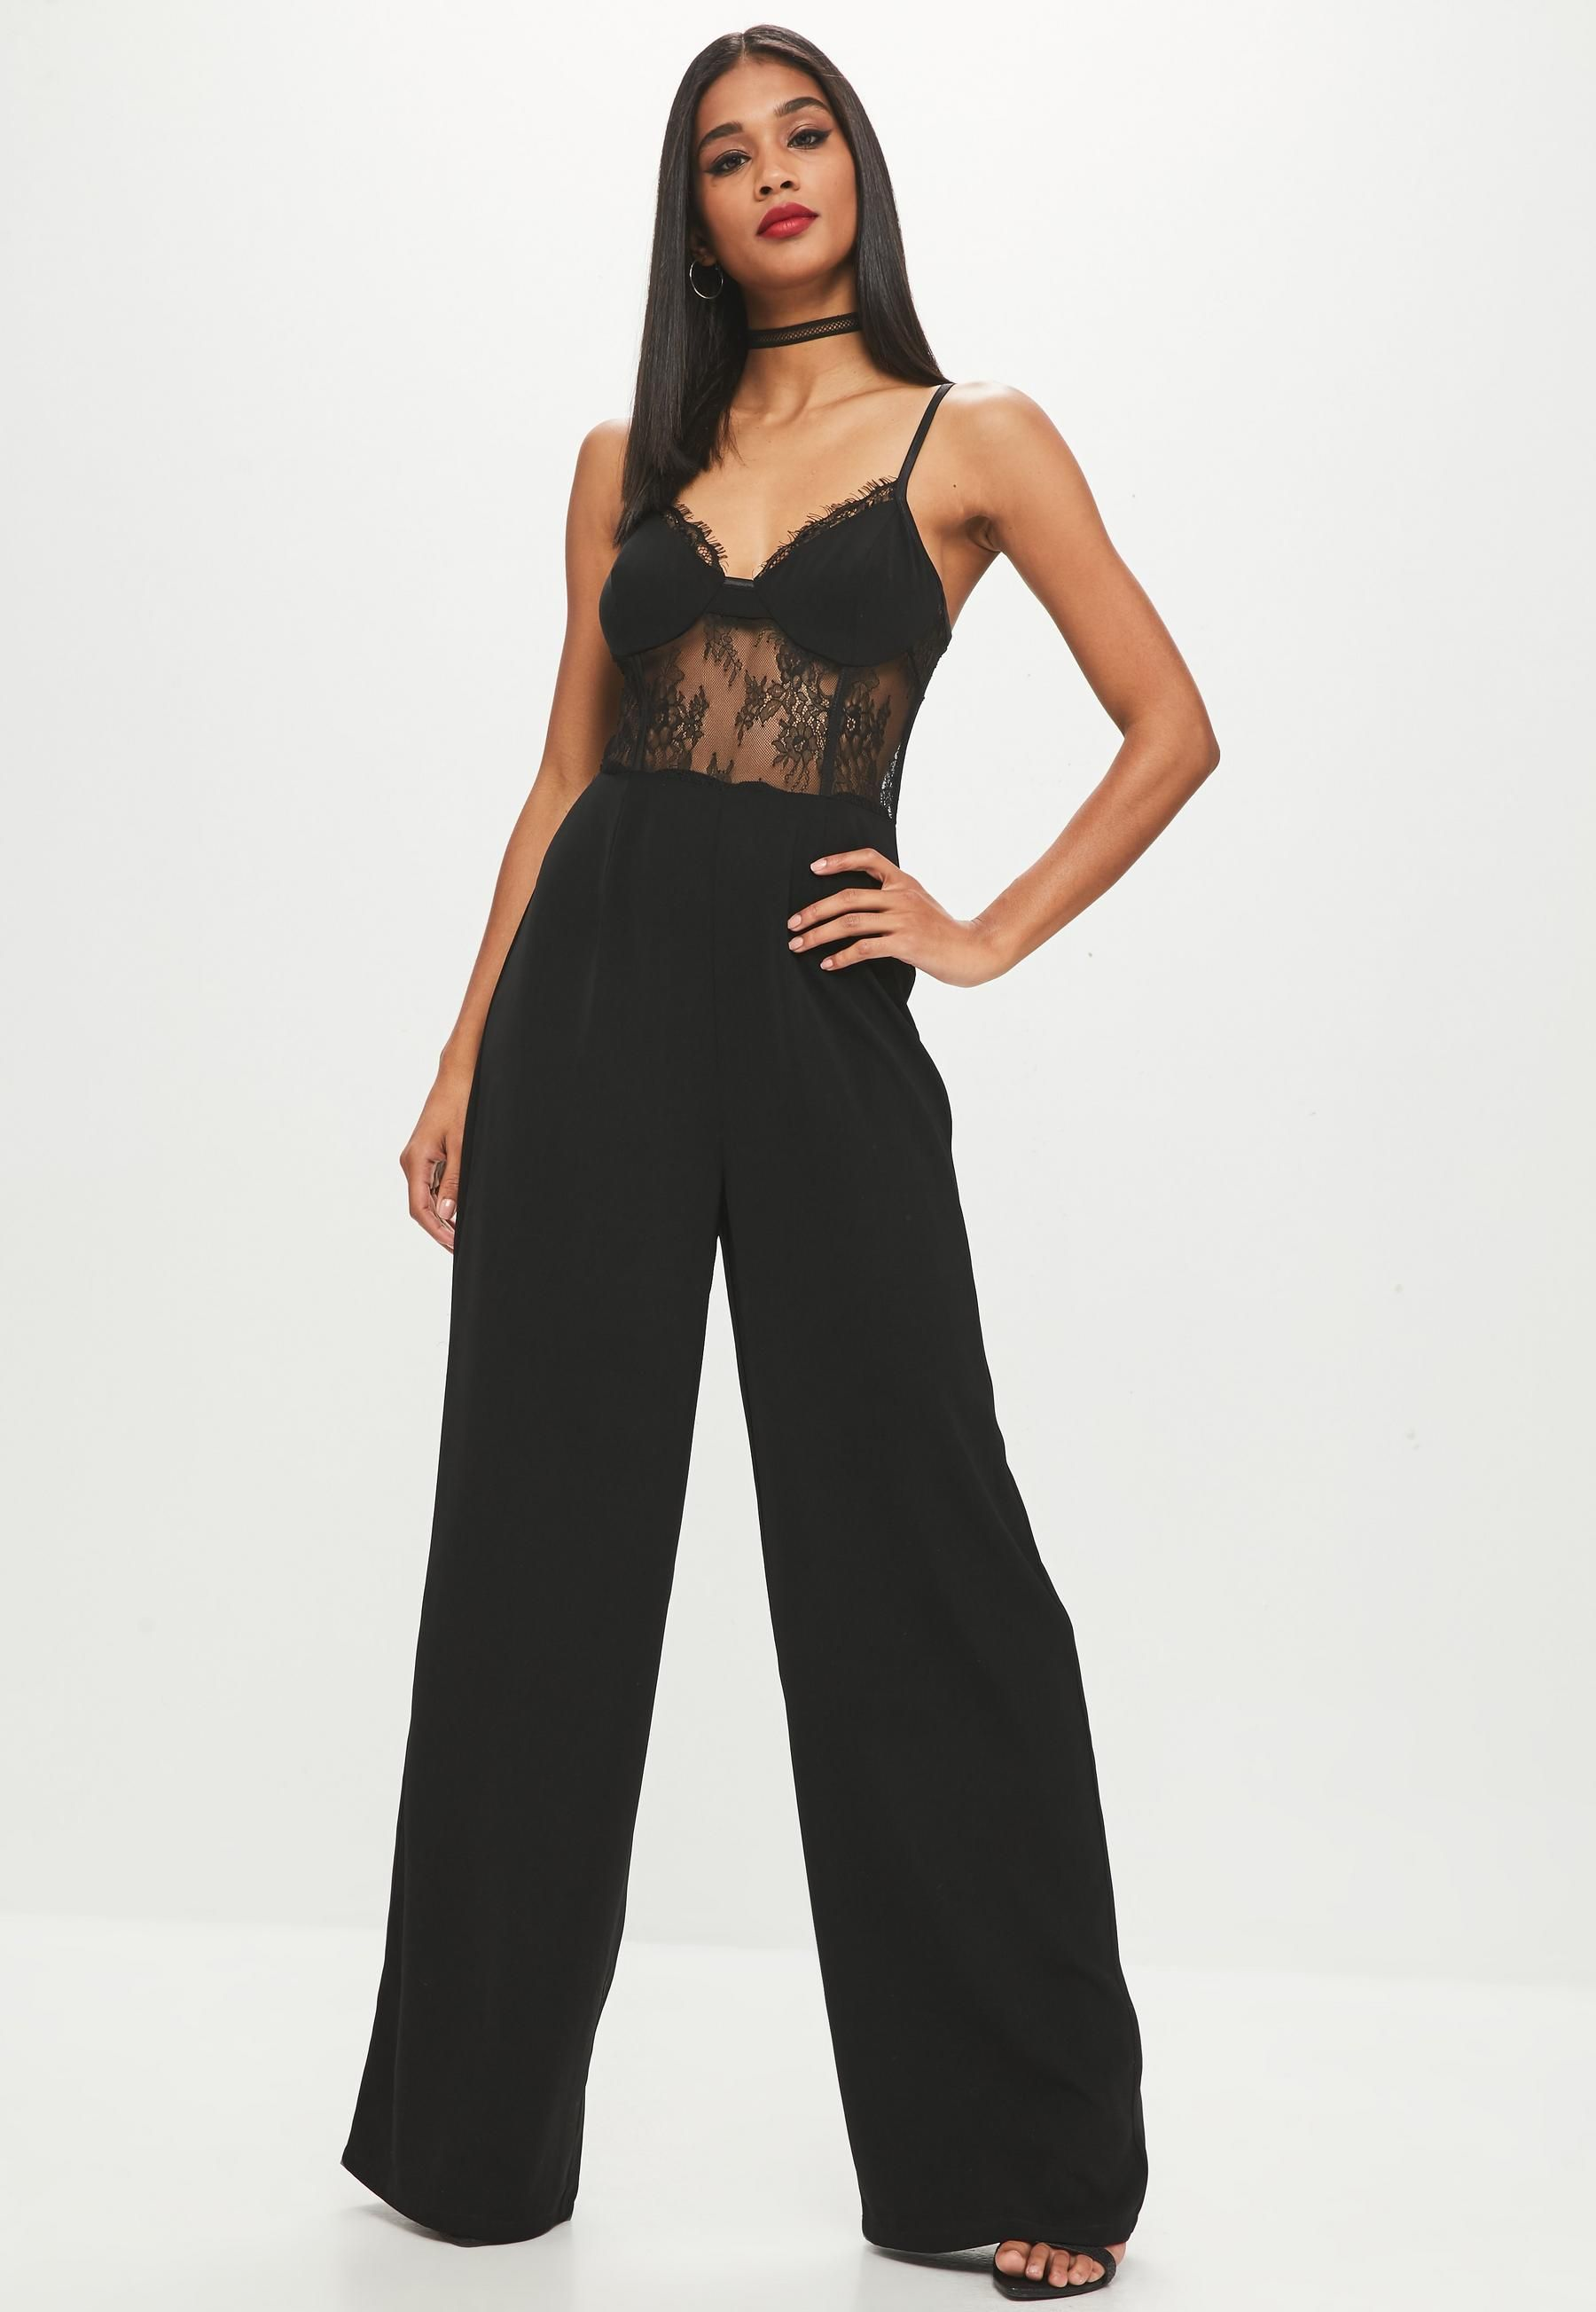 27aeeb90e8c0 Black Lace Corset Wide Leg Jumpsuit | Fashion | Jumpsuit, Lace ...